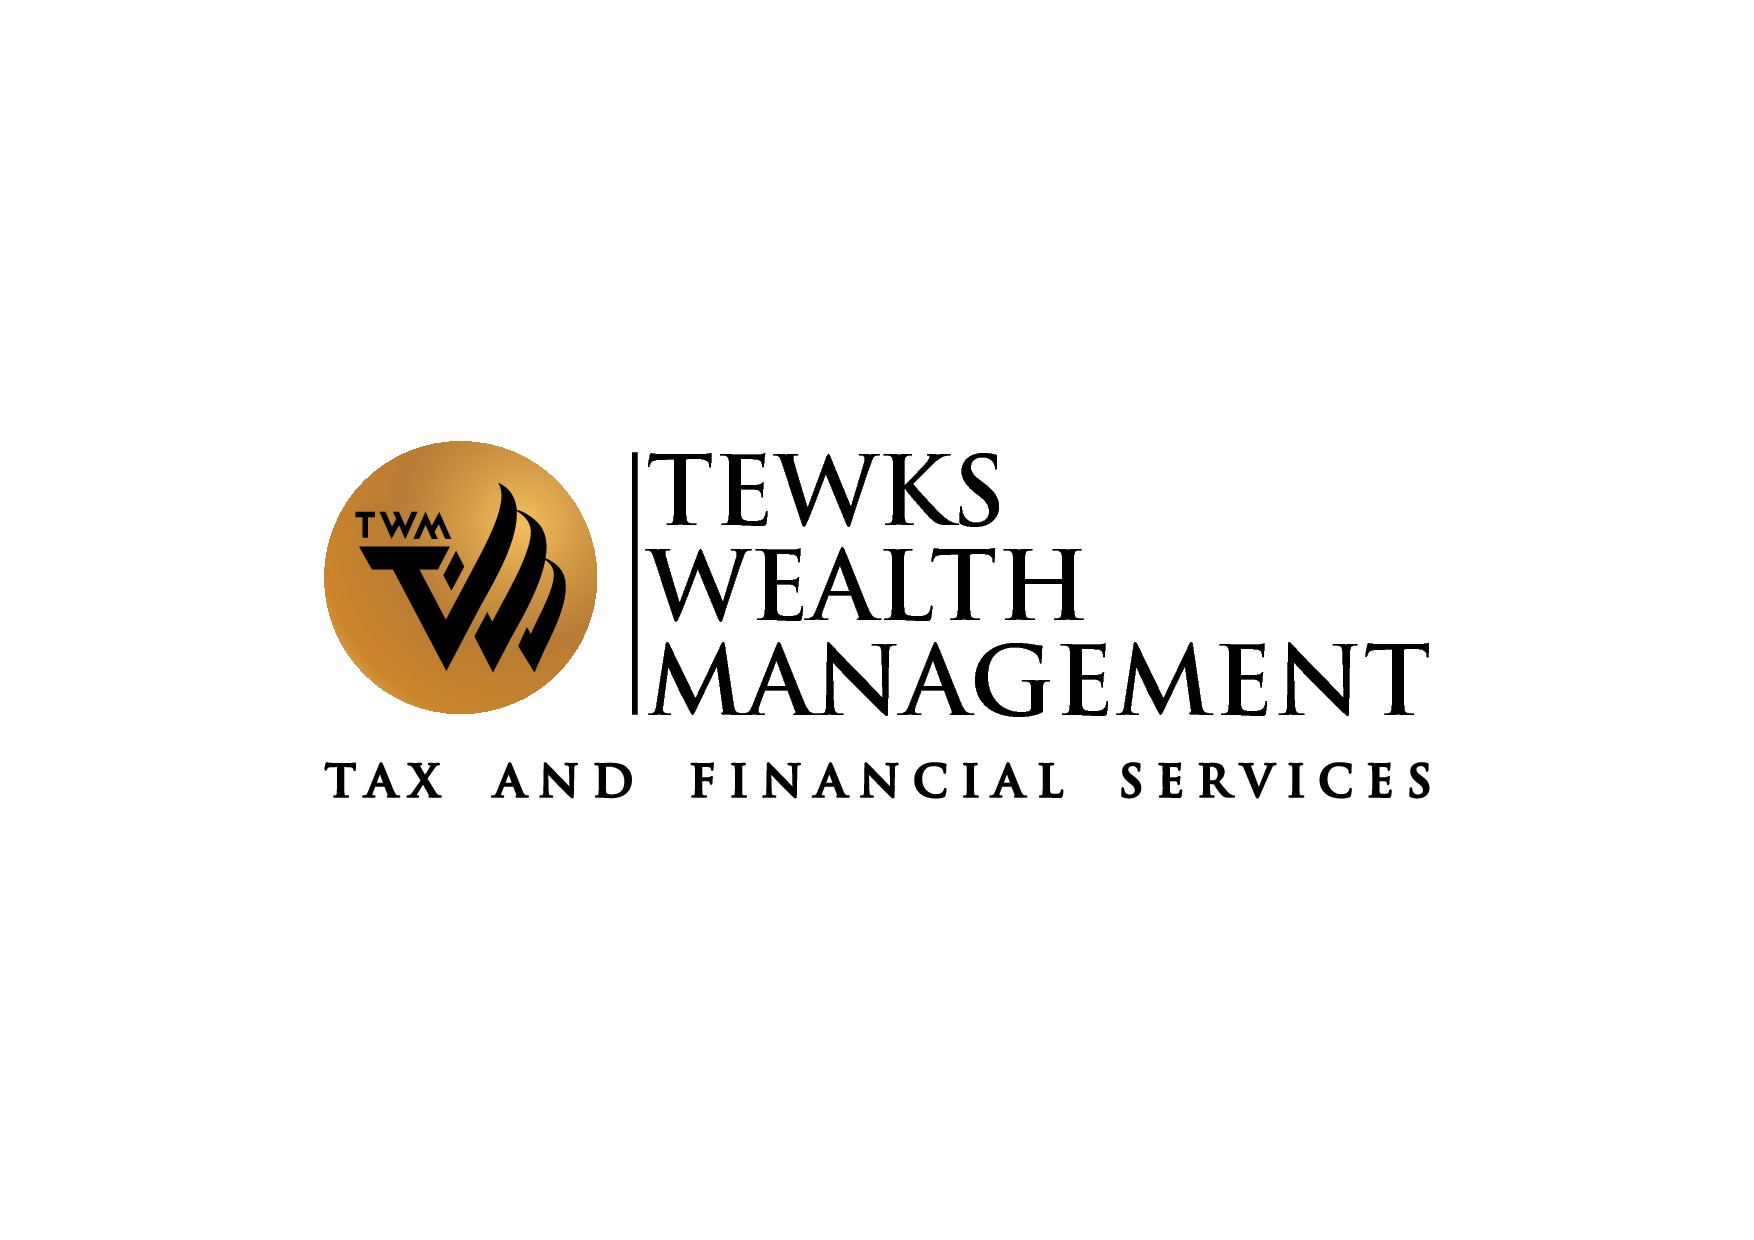 Tax/Investment Mgmt firm needs a brand logo that screams confident, trustworthy, knowledgeable